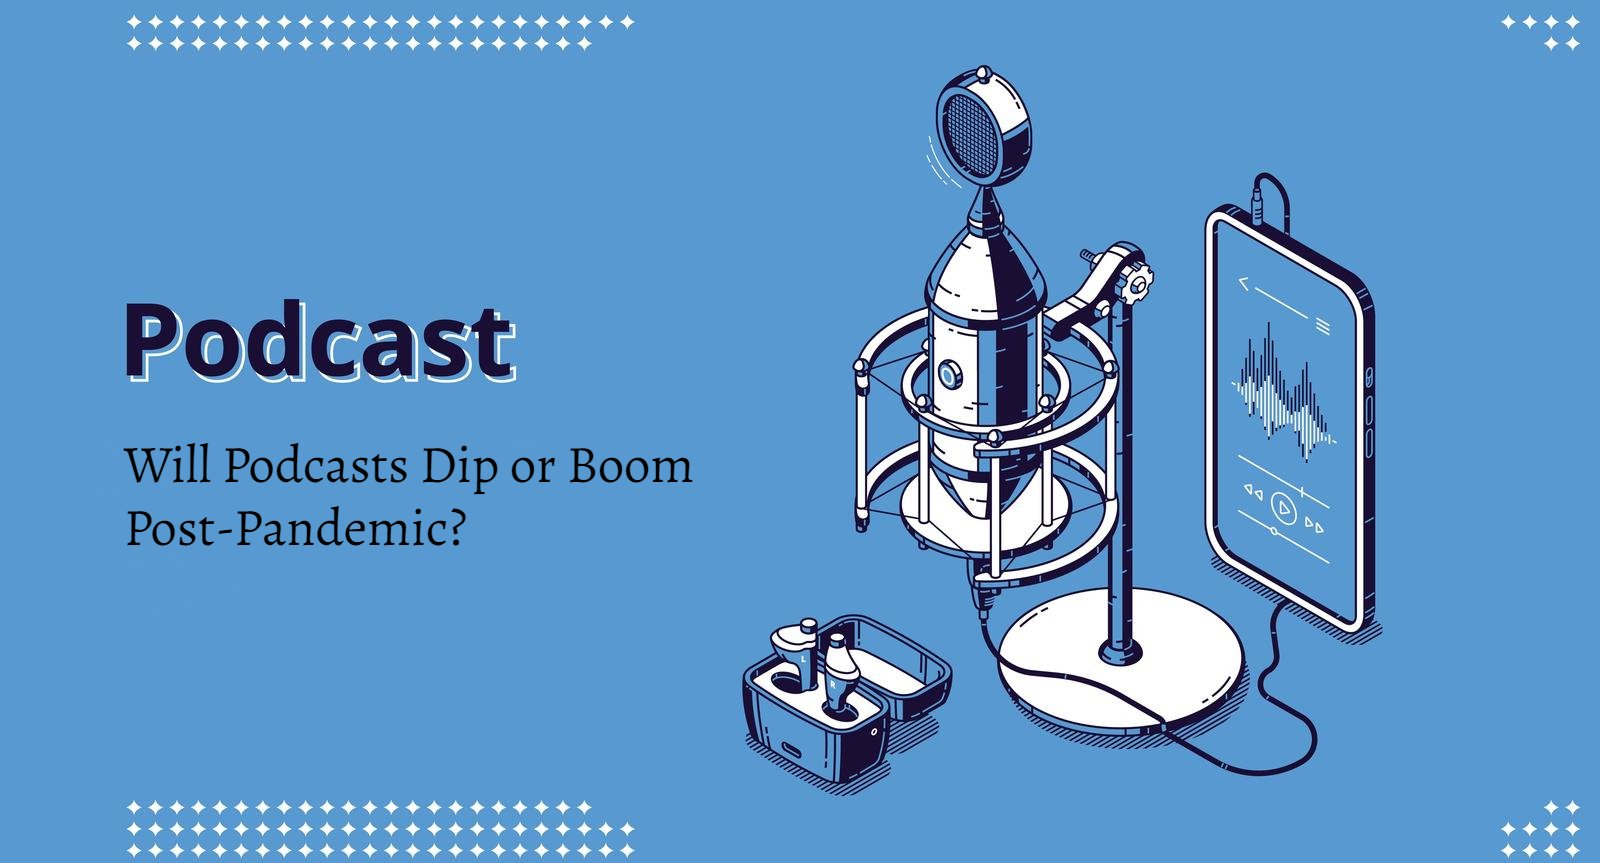 Will Podcasts Dip or Boom Post-Pandemic? 1